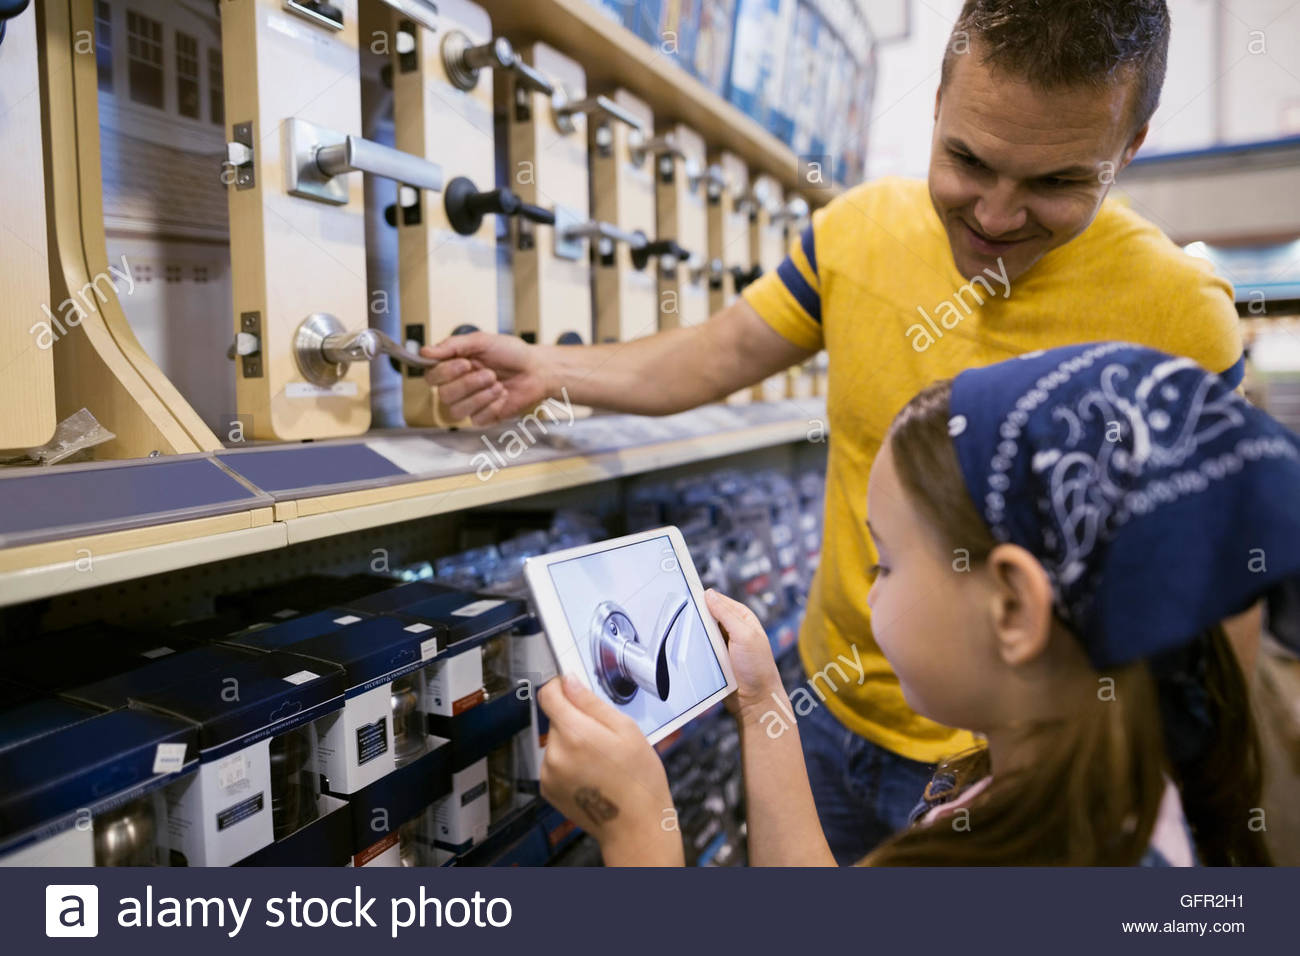 Father and daughter with digital tablet shopping for drawer pulls in home improvement store - Stock Image